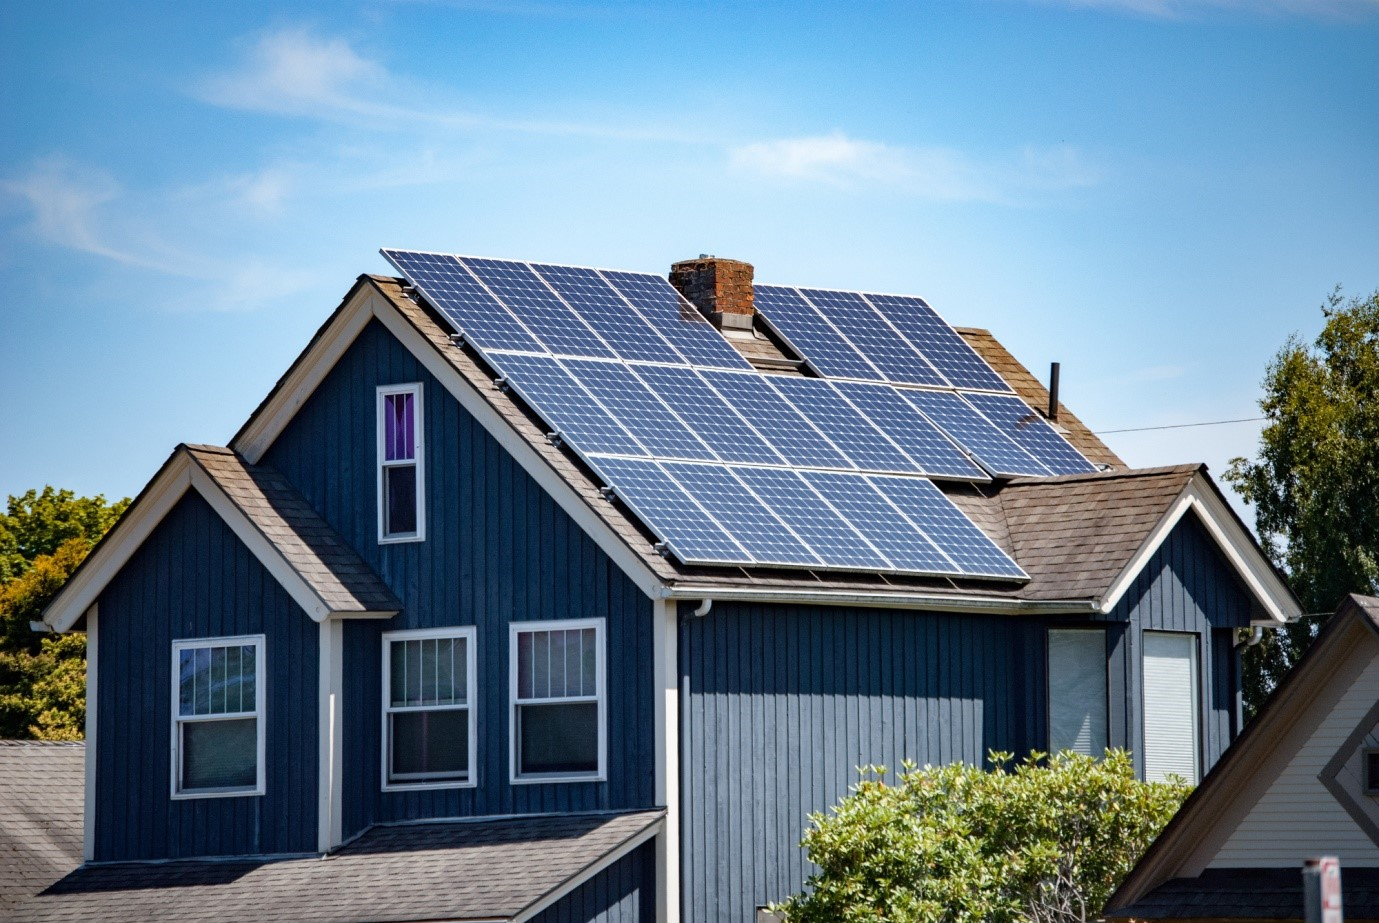 Top 5 Benefits of Installing Solar Panels on your Home